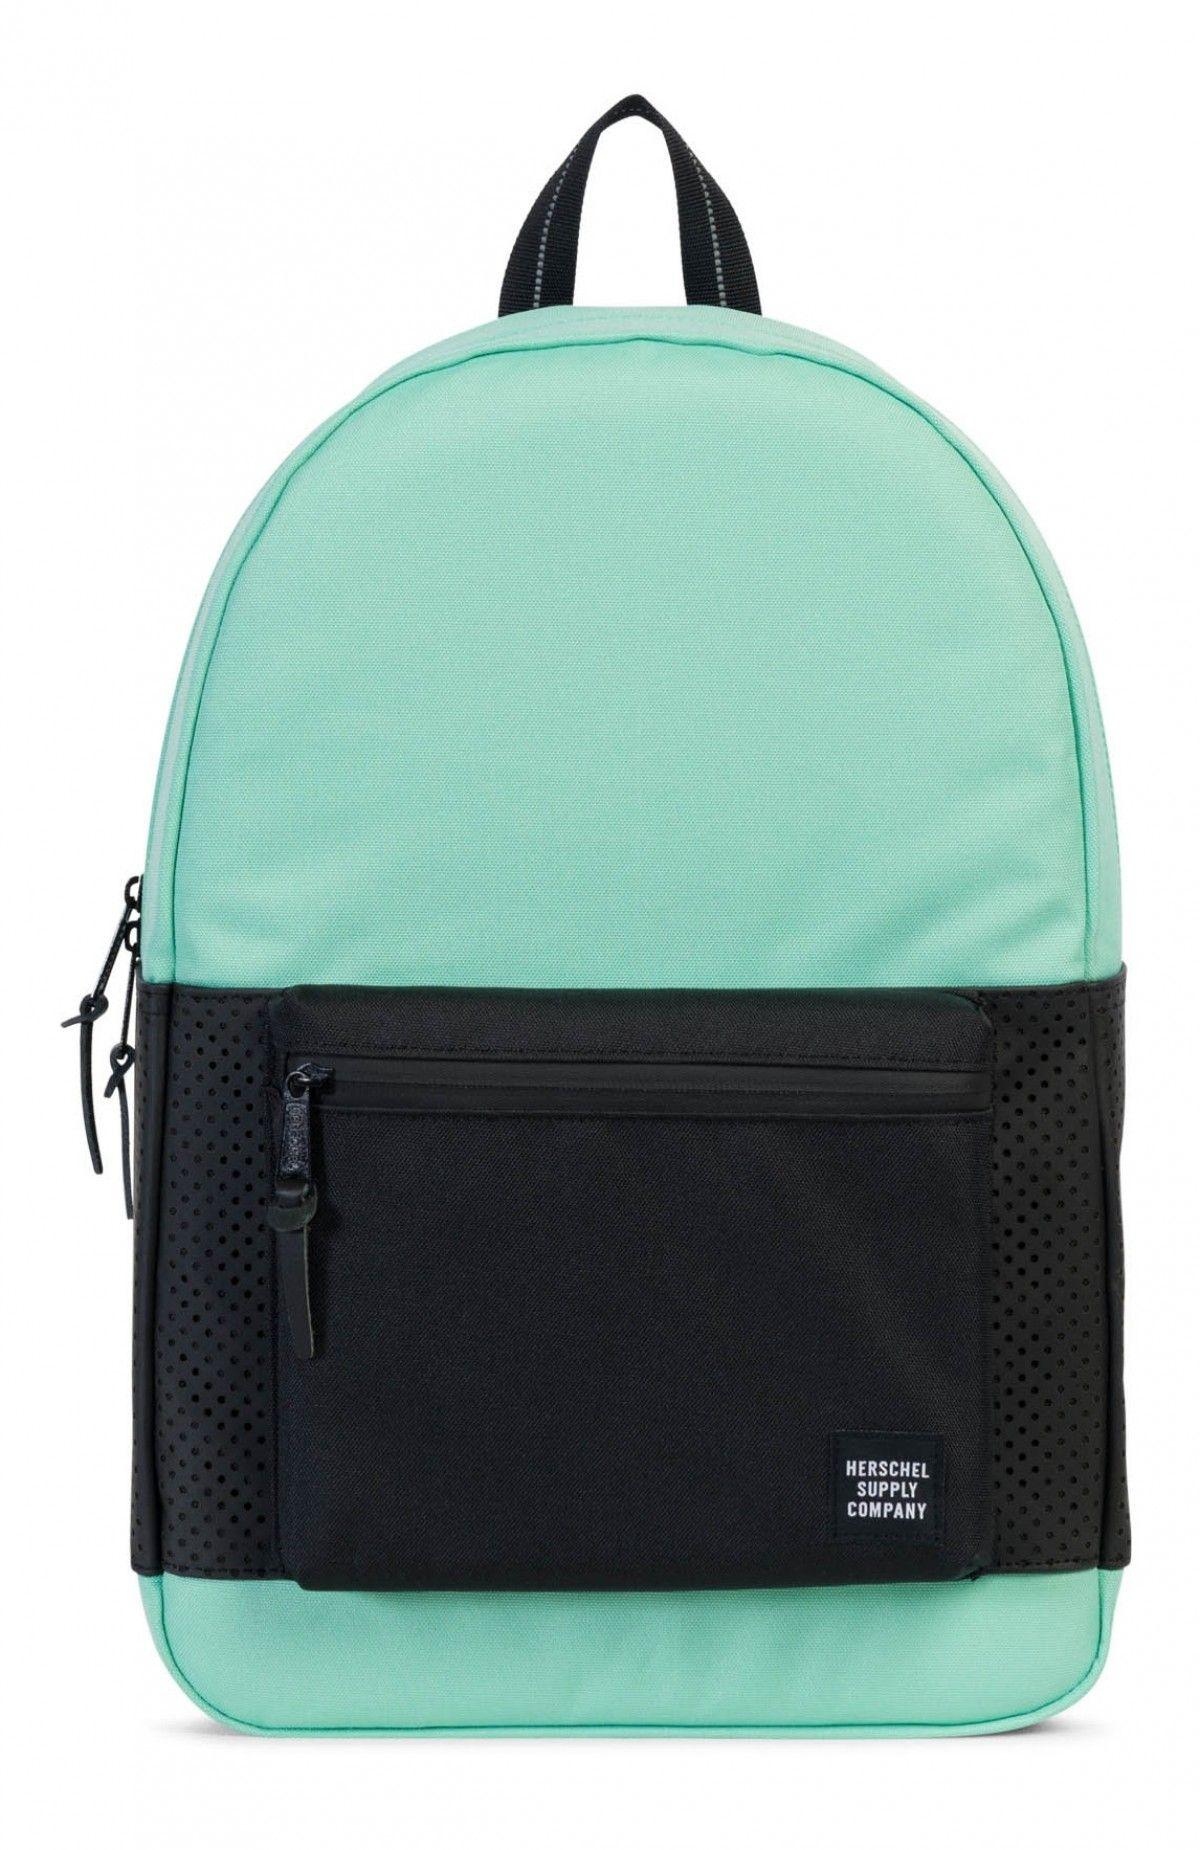 26f76990f7 Herschel Settlement Backpack Aspect Poly Lucite Green Black ...